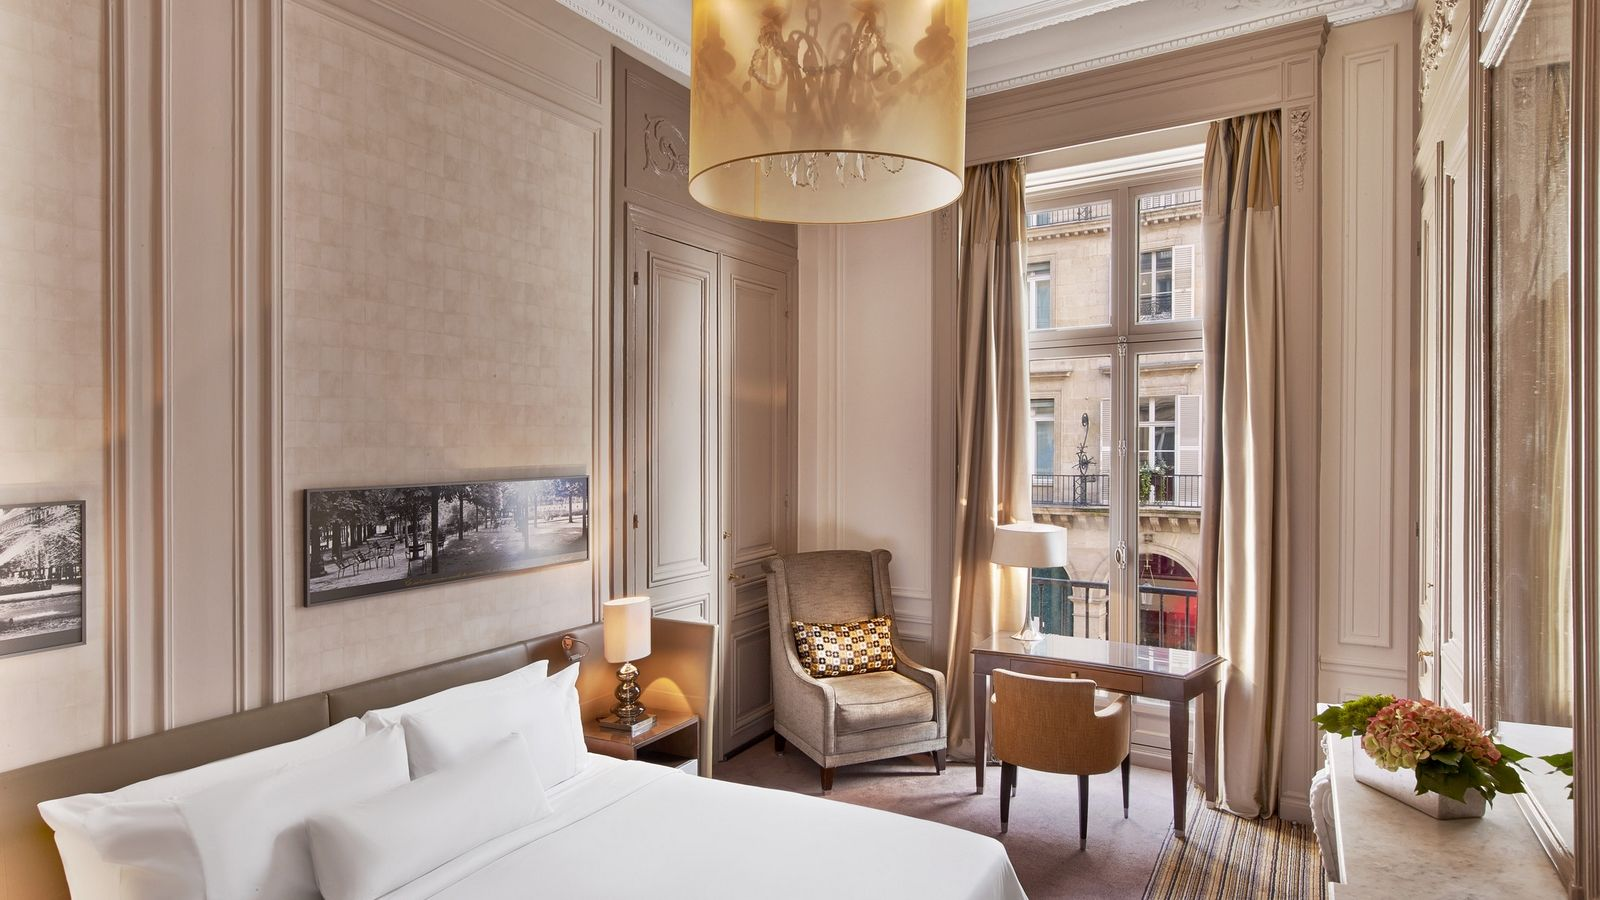 Superior Room in The Westin Paris-Vendome